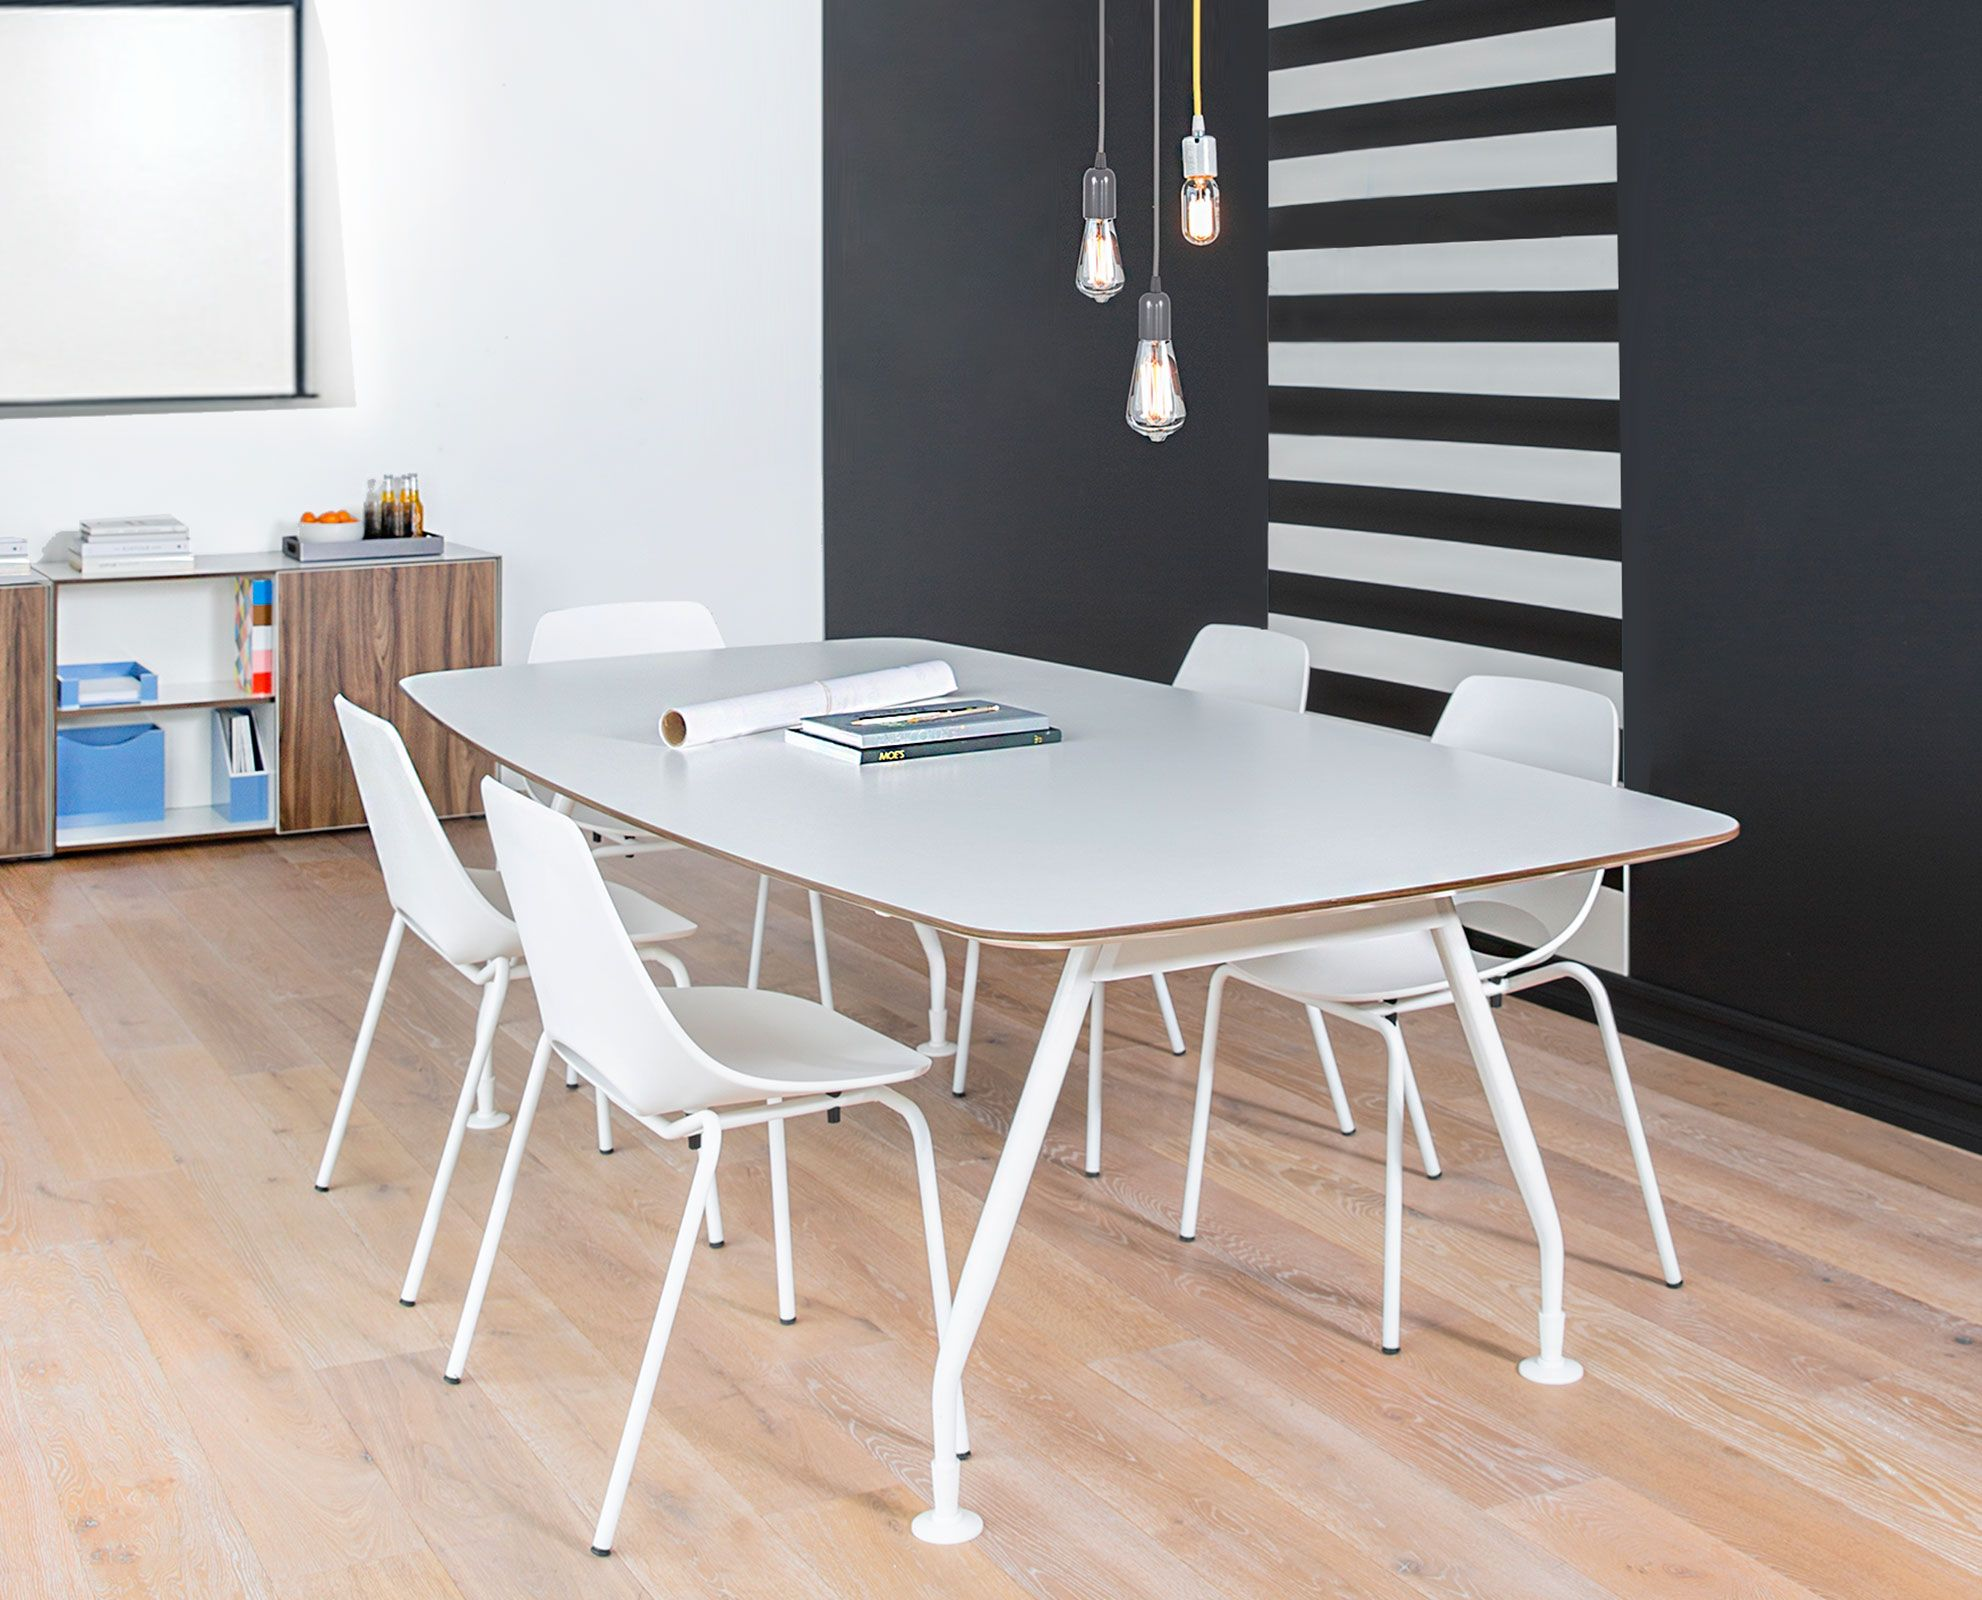 Inspire Your Employees To Greatness With The Sparsa Conference Table From Scandinavian Designs The Large T Office Furniture Collections Table Conference Table